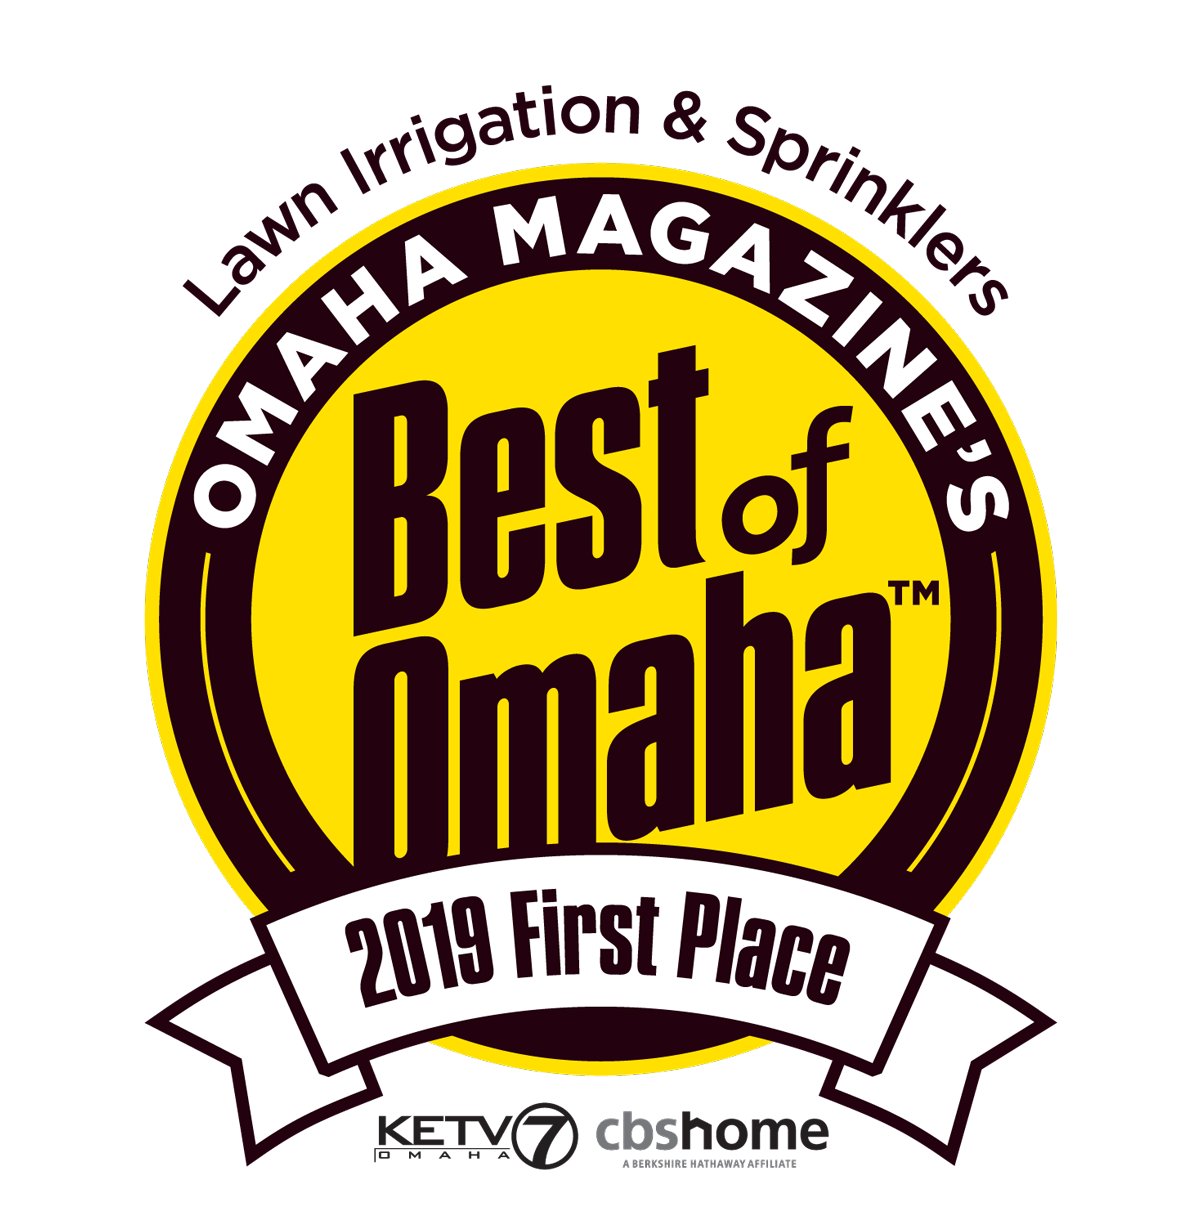 Lawn Irrigation & Sprinklers - 2019 Best of Omaha First Place - Nature's Helper